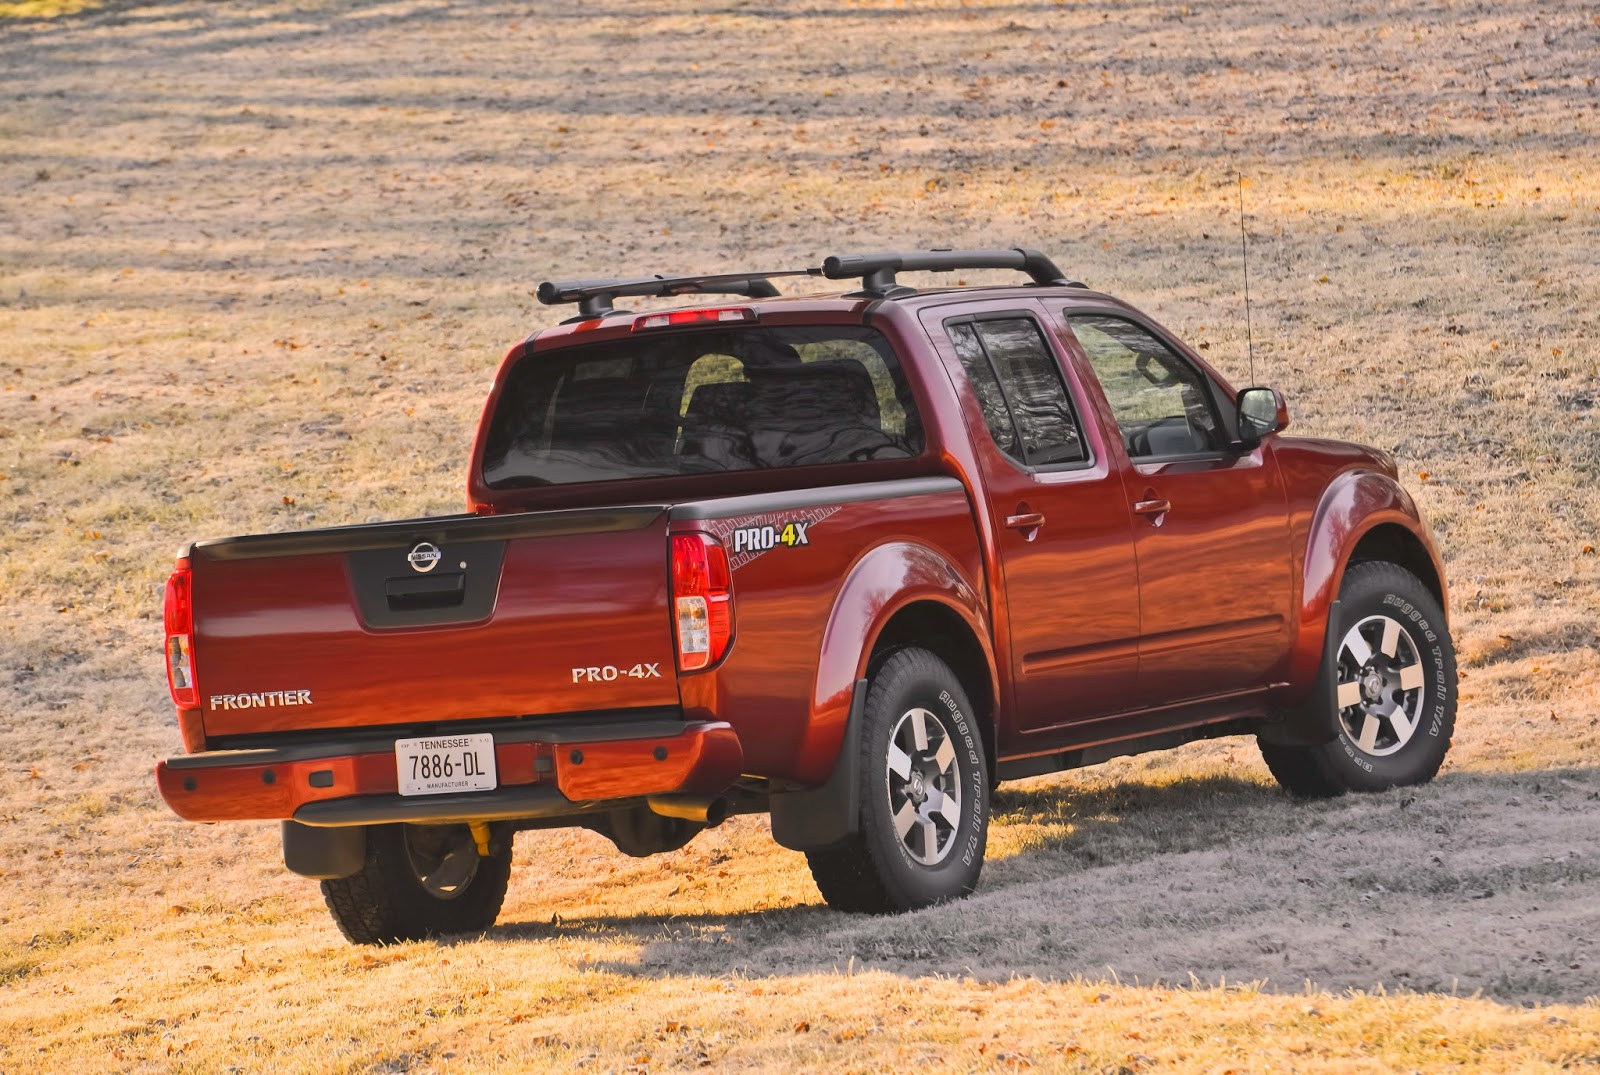 How The 2014 Nissan Frontier PRO-4X Tries To Hide Its Age